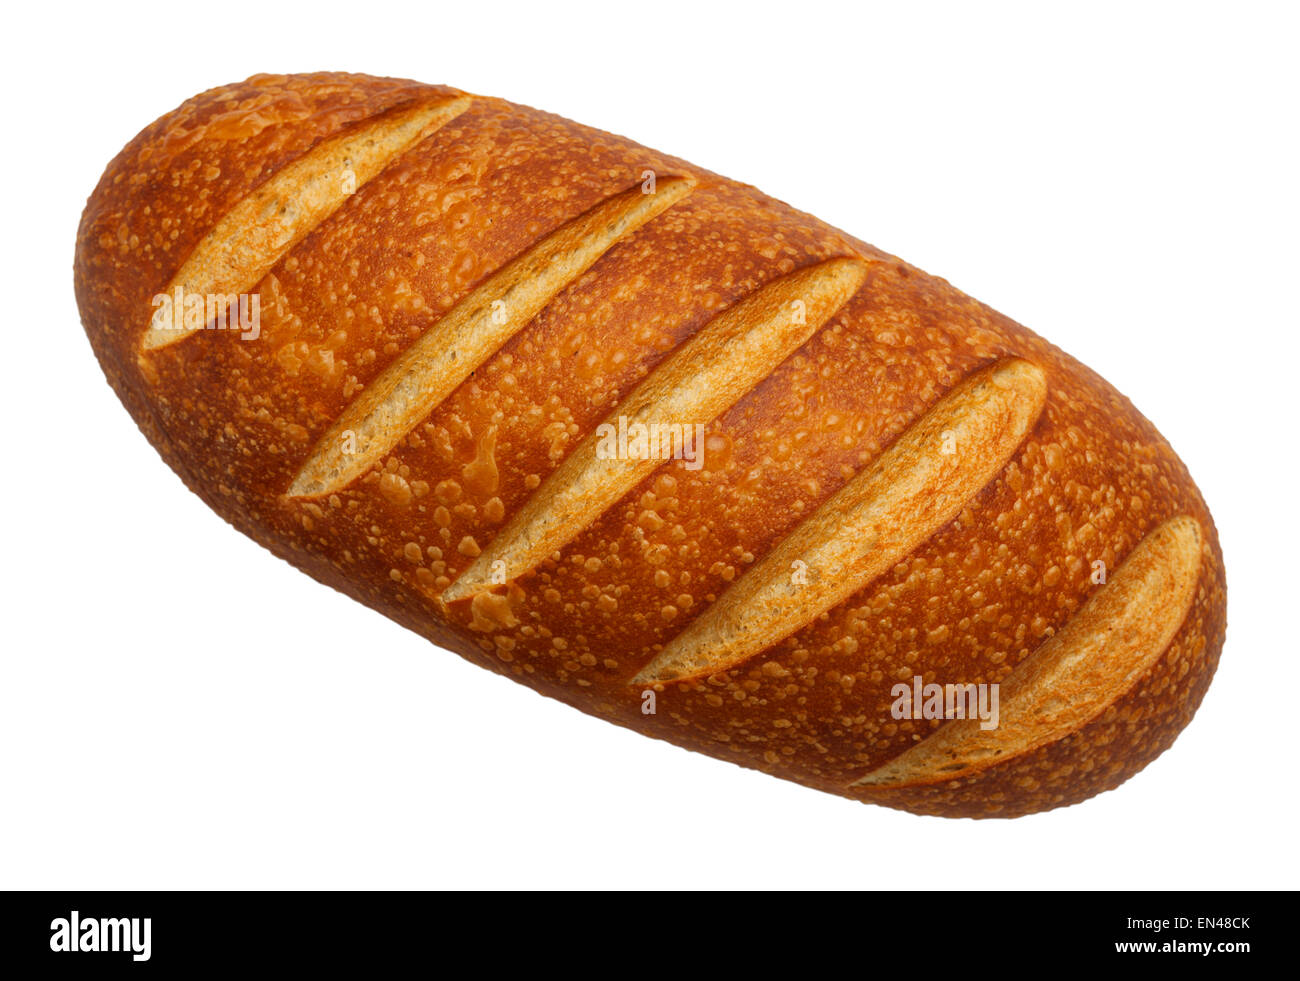 Large Loaf Of French Bread Top View Isolated On White Background